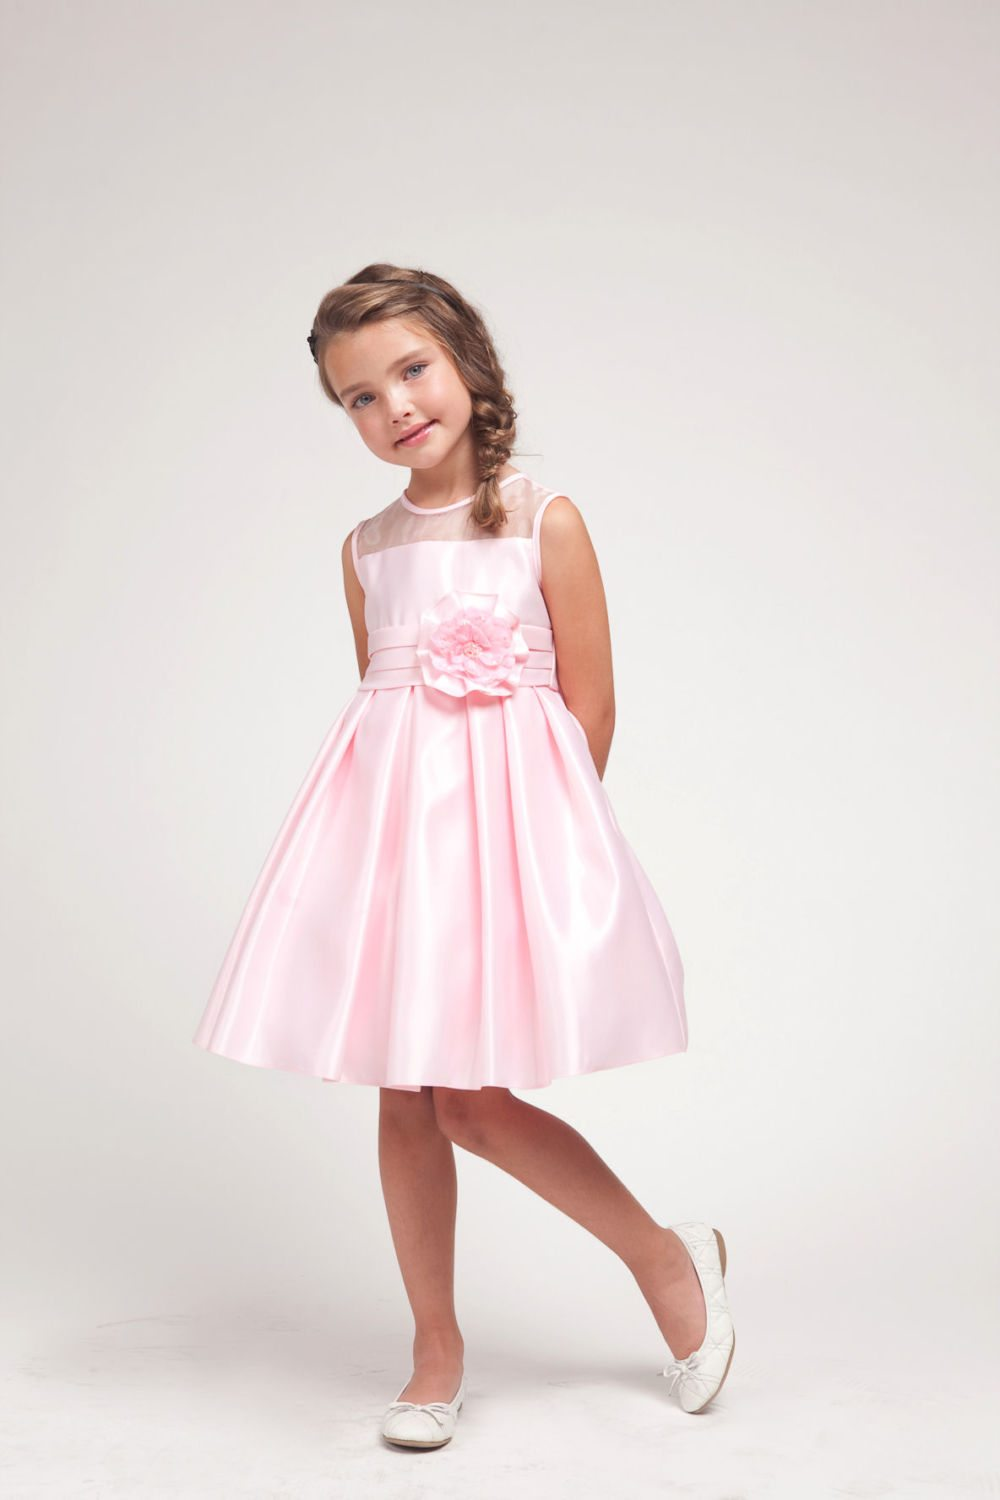 Pink Puffy Flower Girl Dresses For Your Little Pal